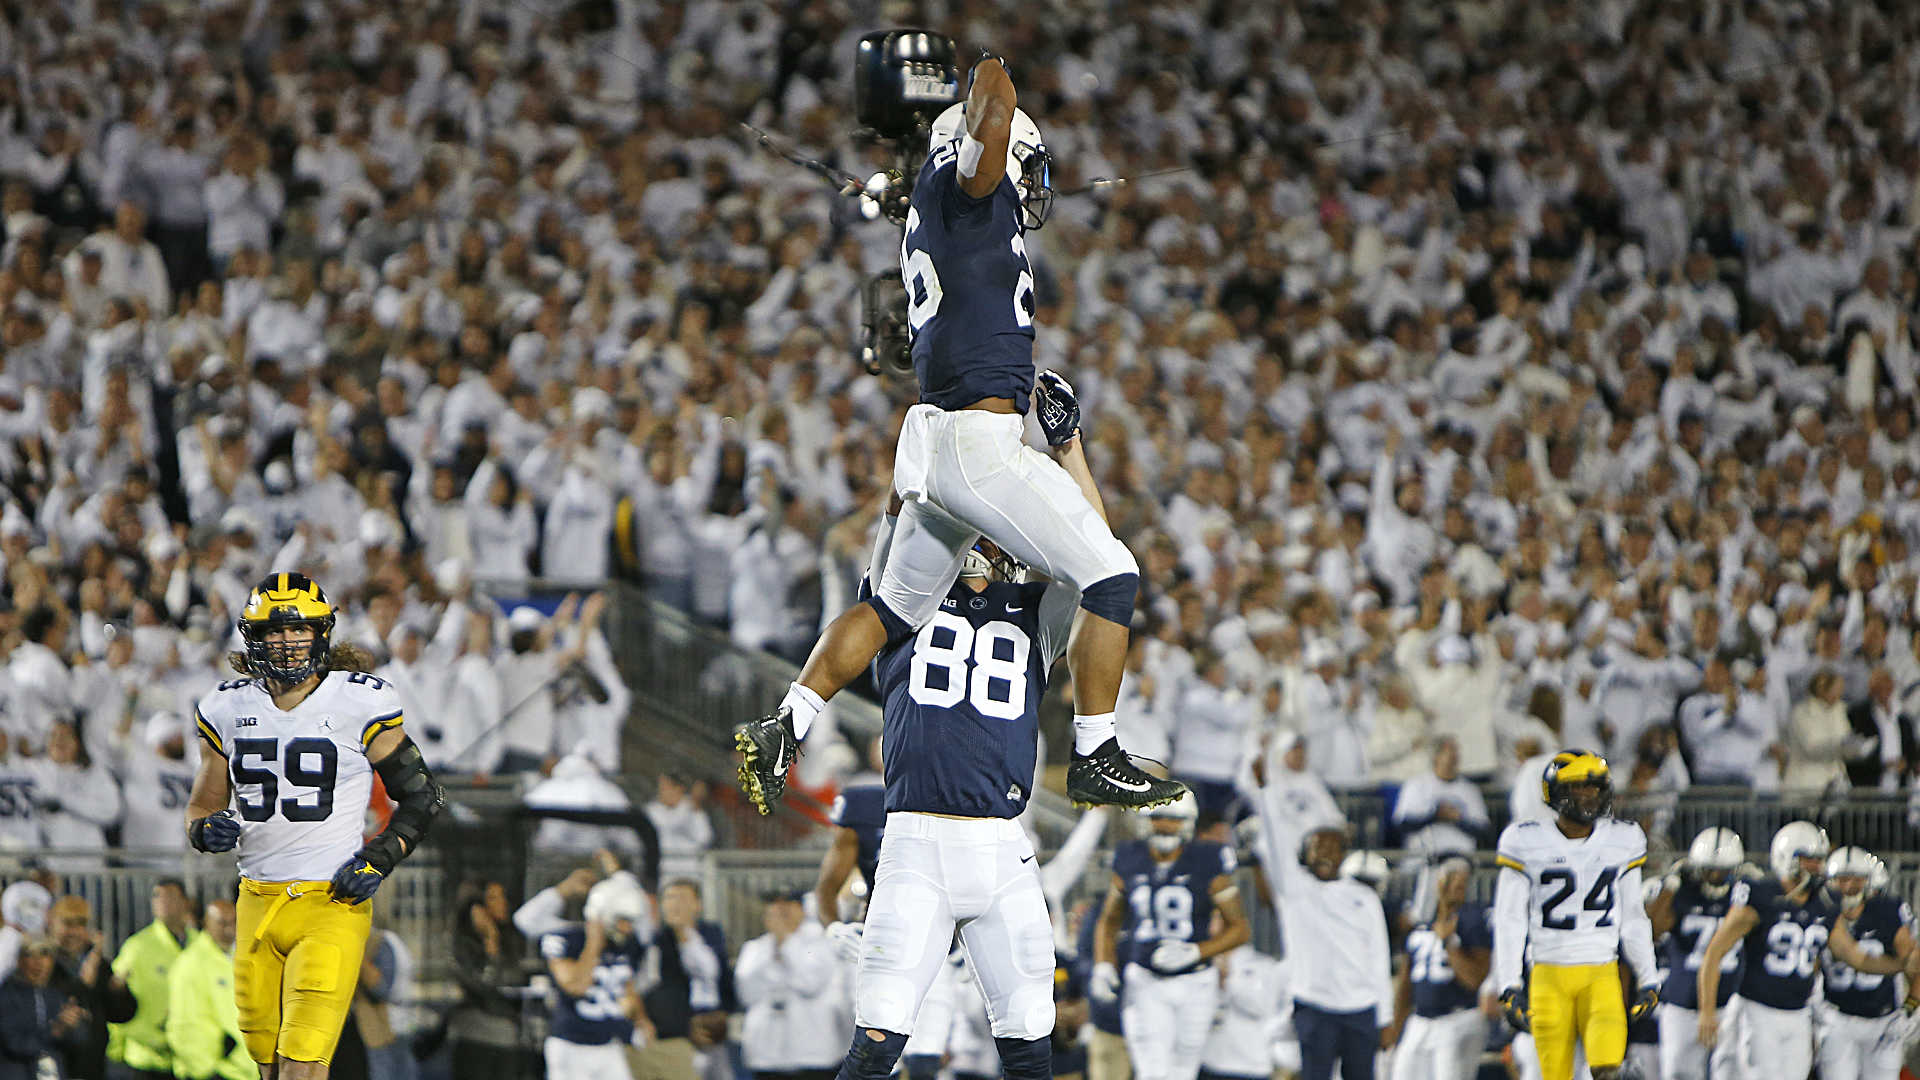 Saquon Barkley College Football S Most Outstanding Player